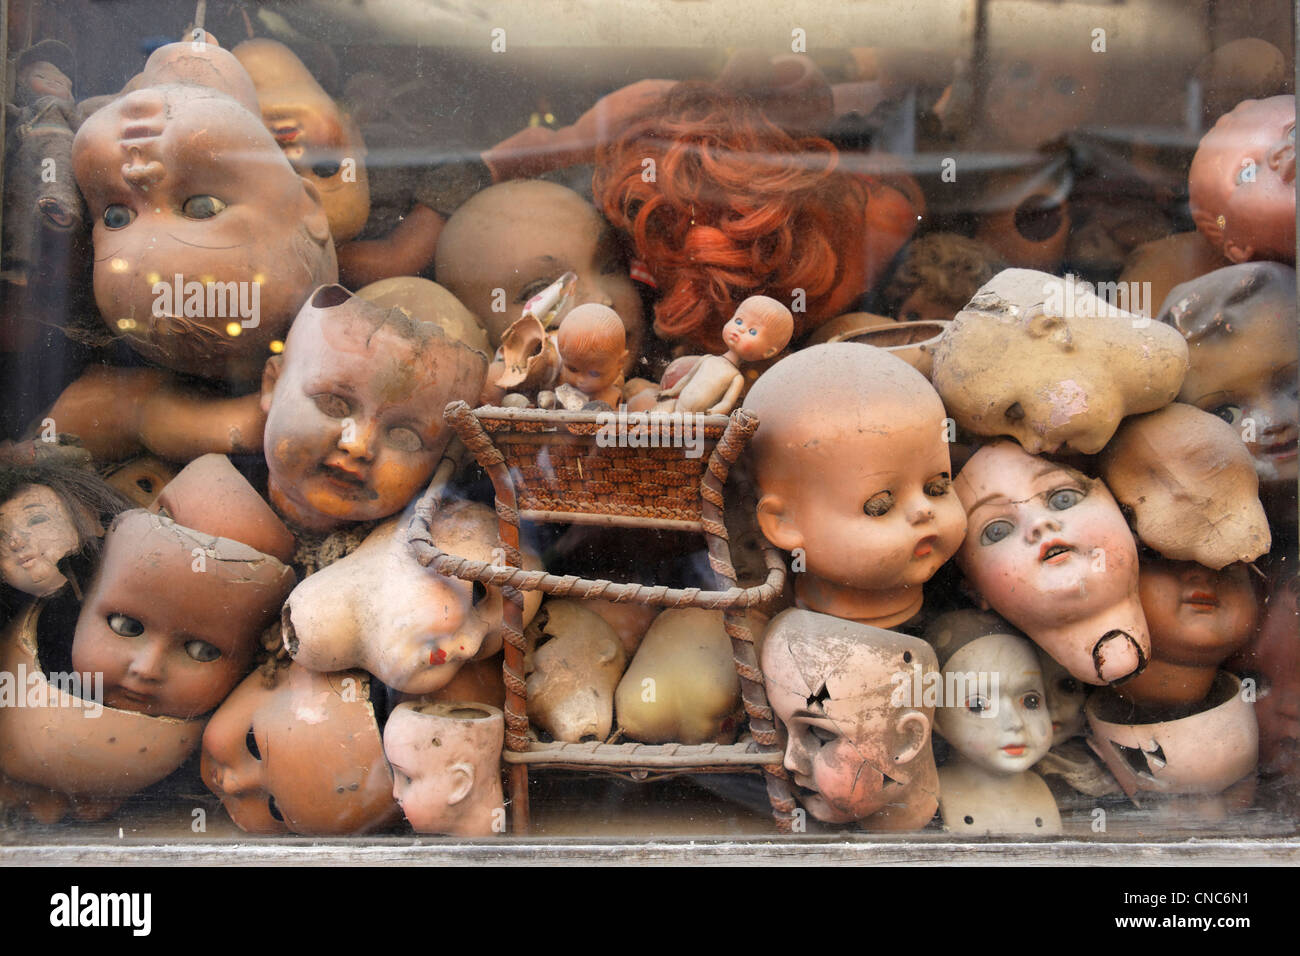 Italy, Lazio, Rome, heads of dolls behind a shop window - Stock Image